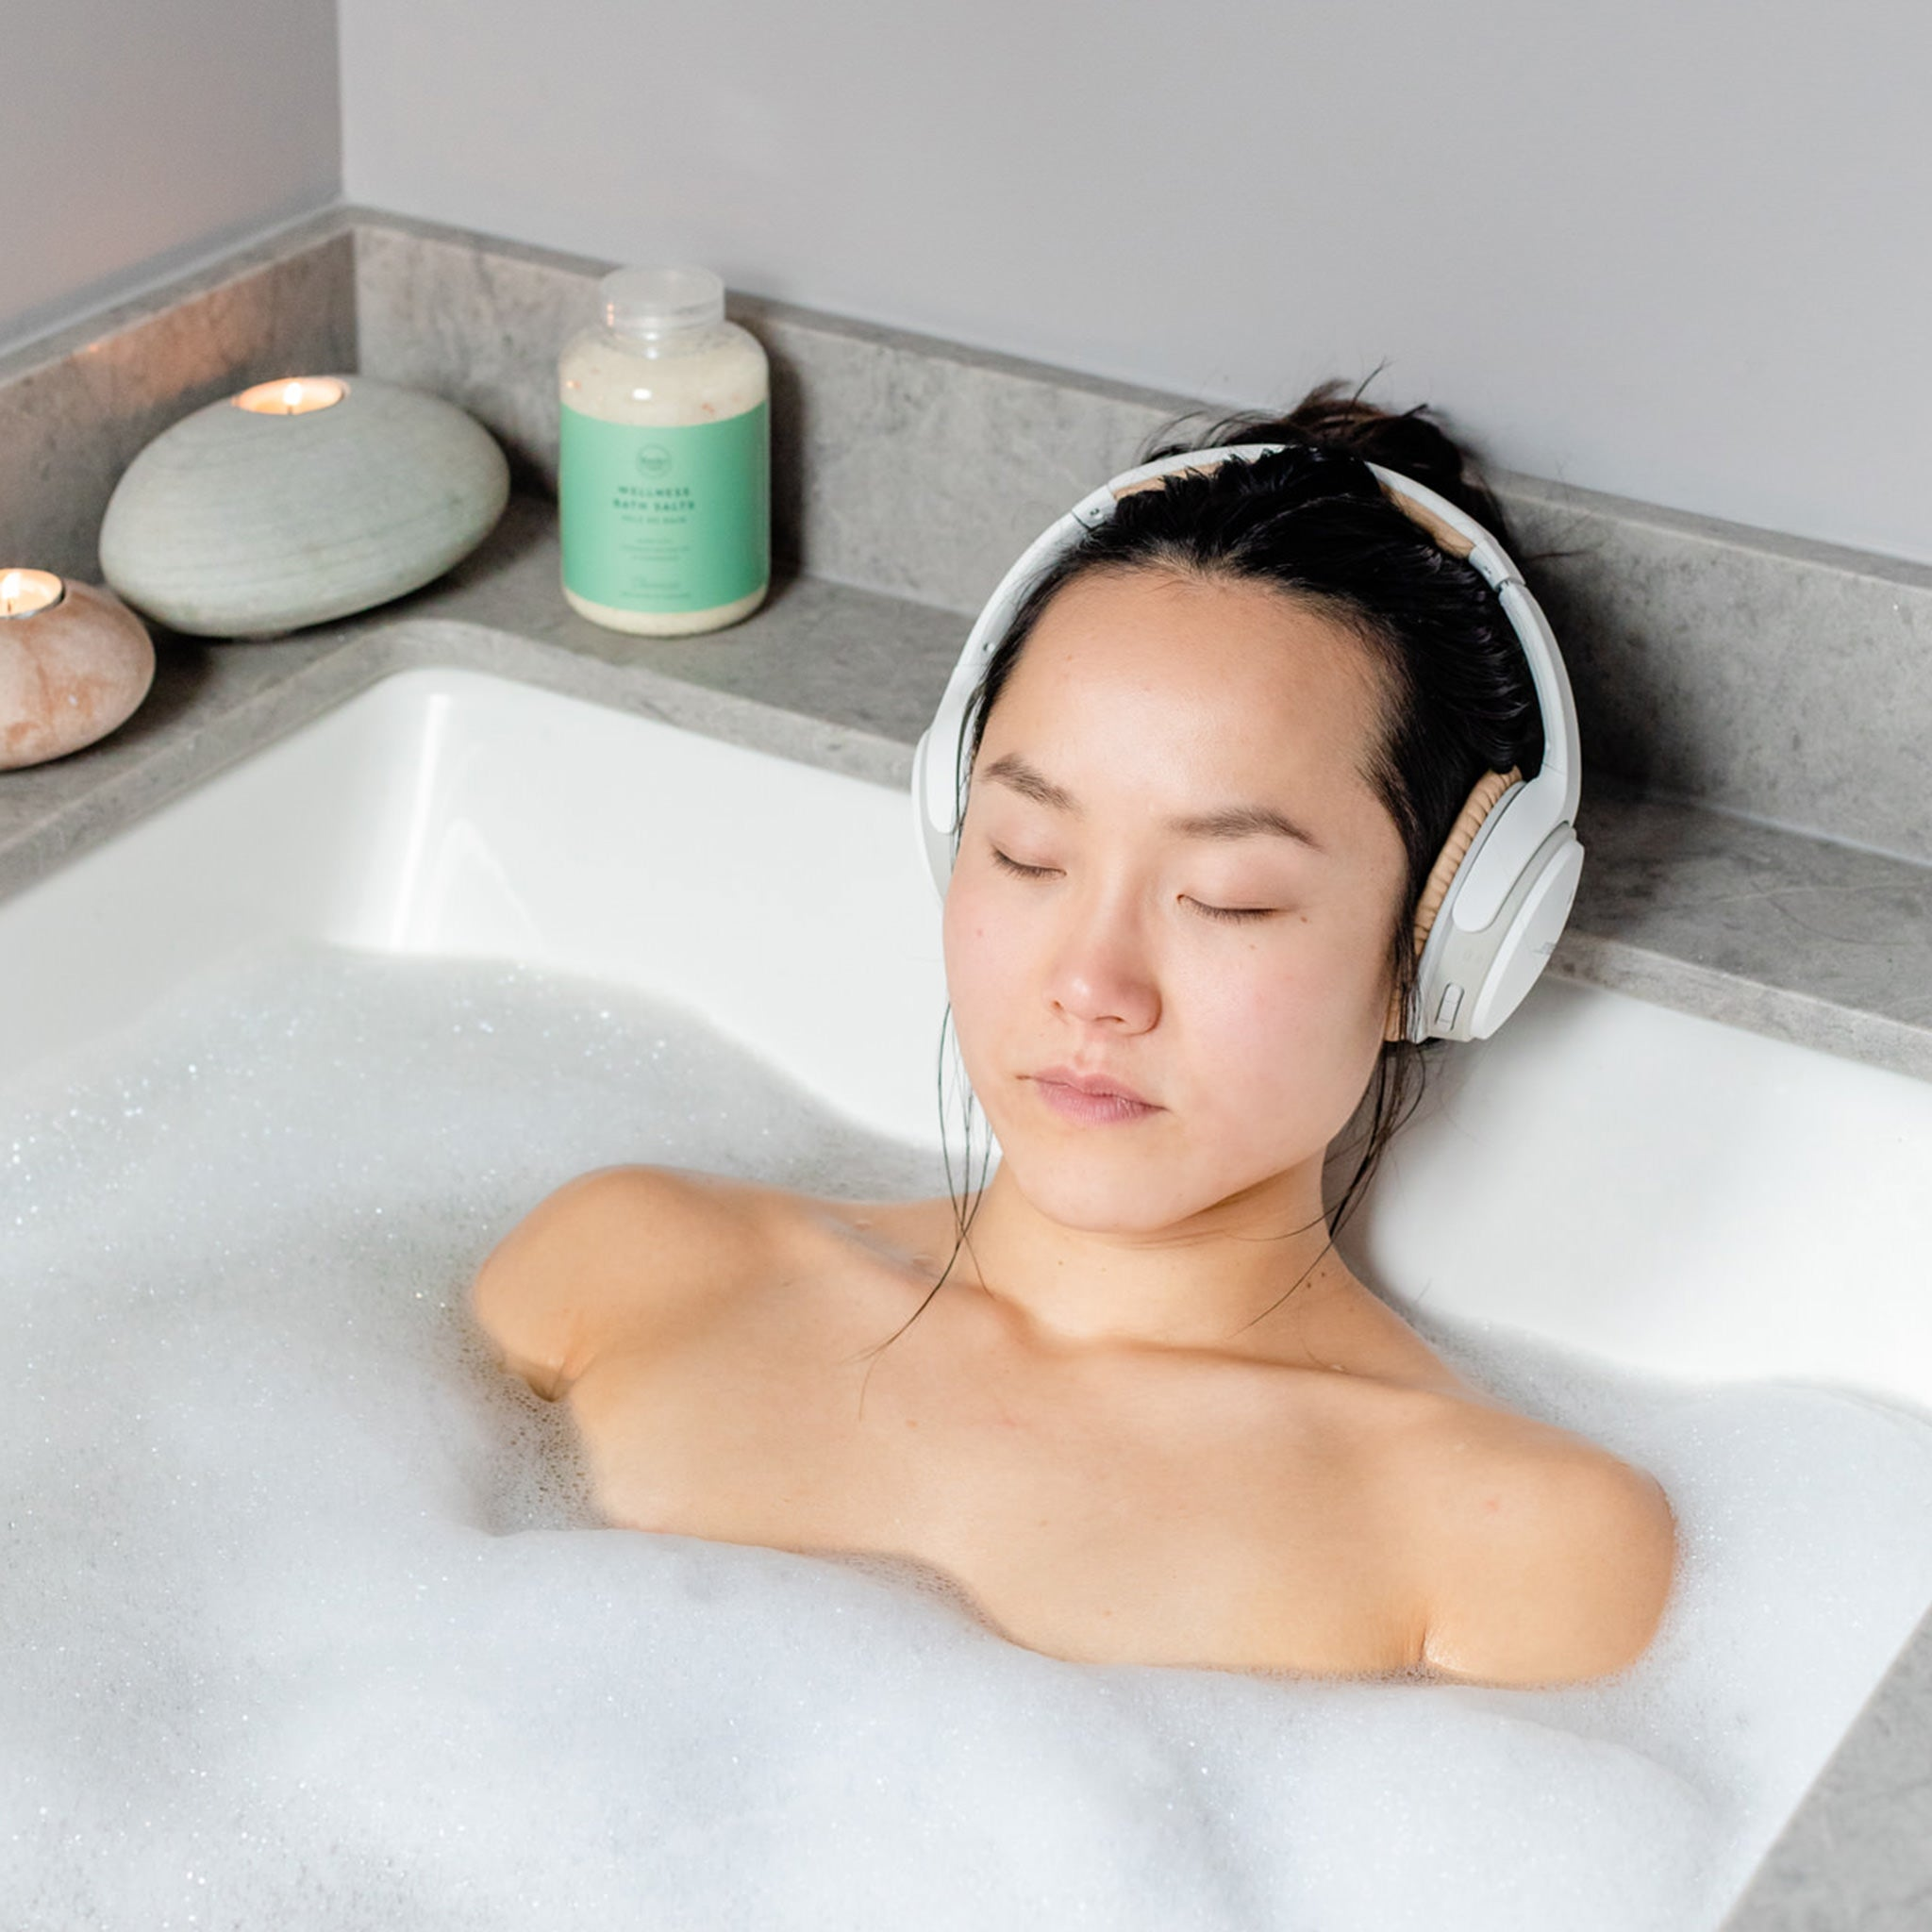 Woman in bath with headphones on, jar of all natural locally made Rocky Mountain Soap Company bath salts in the background.